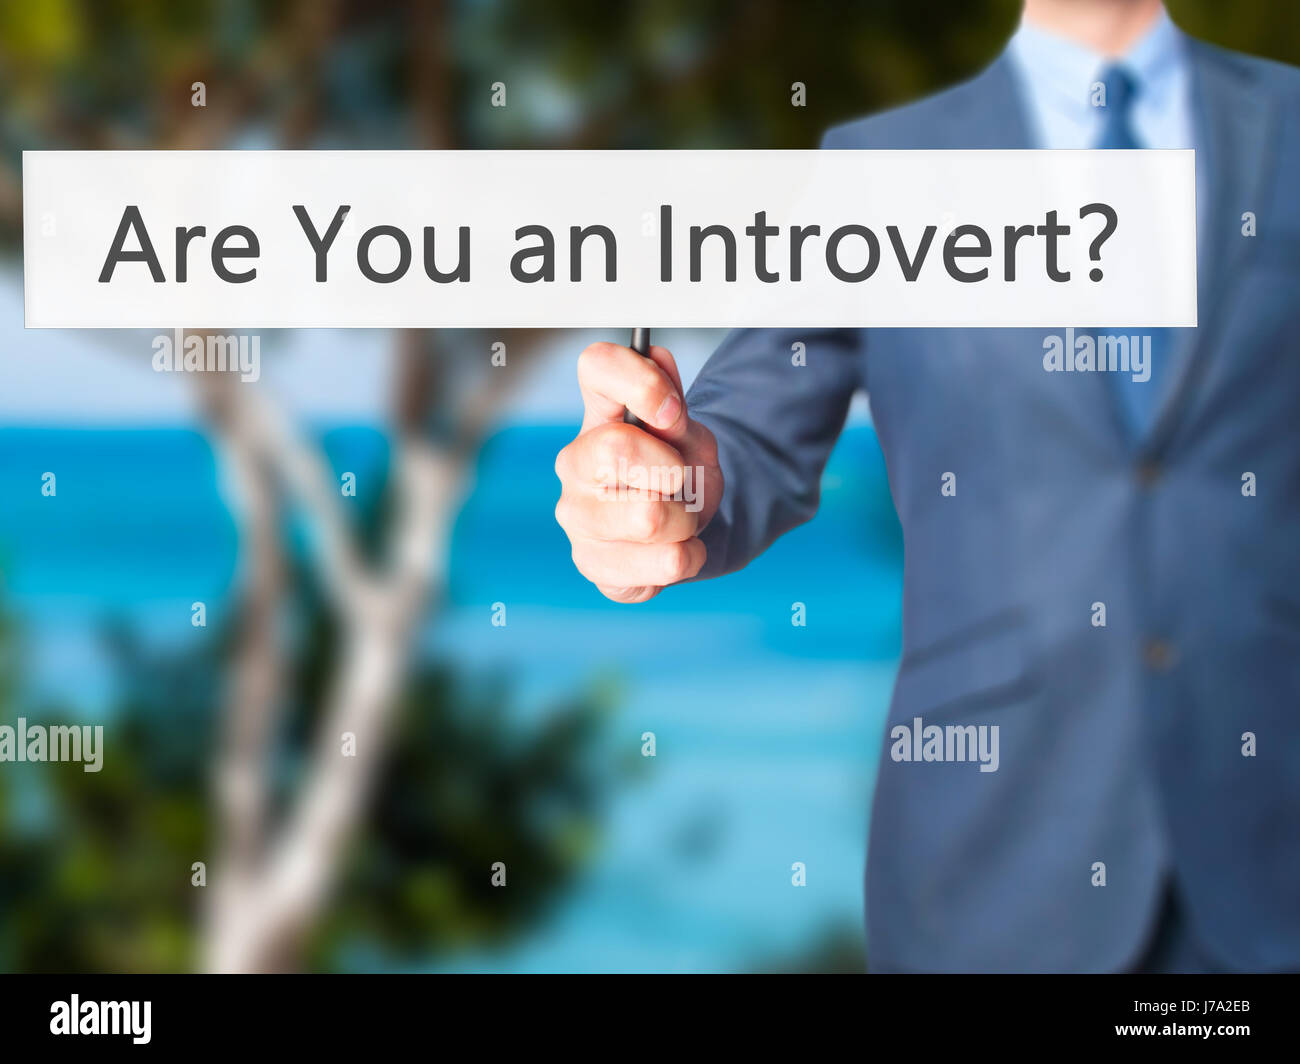 Are You an Introvert ? - Business man showing sign. Business, technology, internet concept. Stock Photo - Stock Image